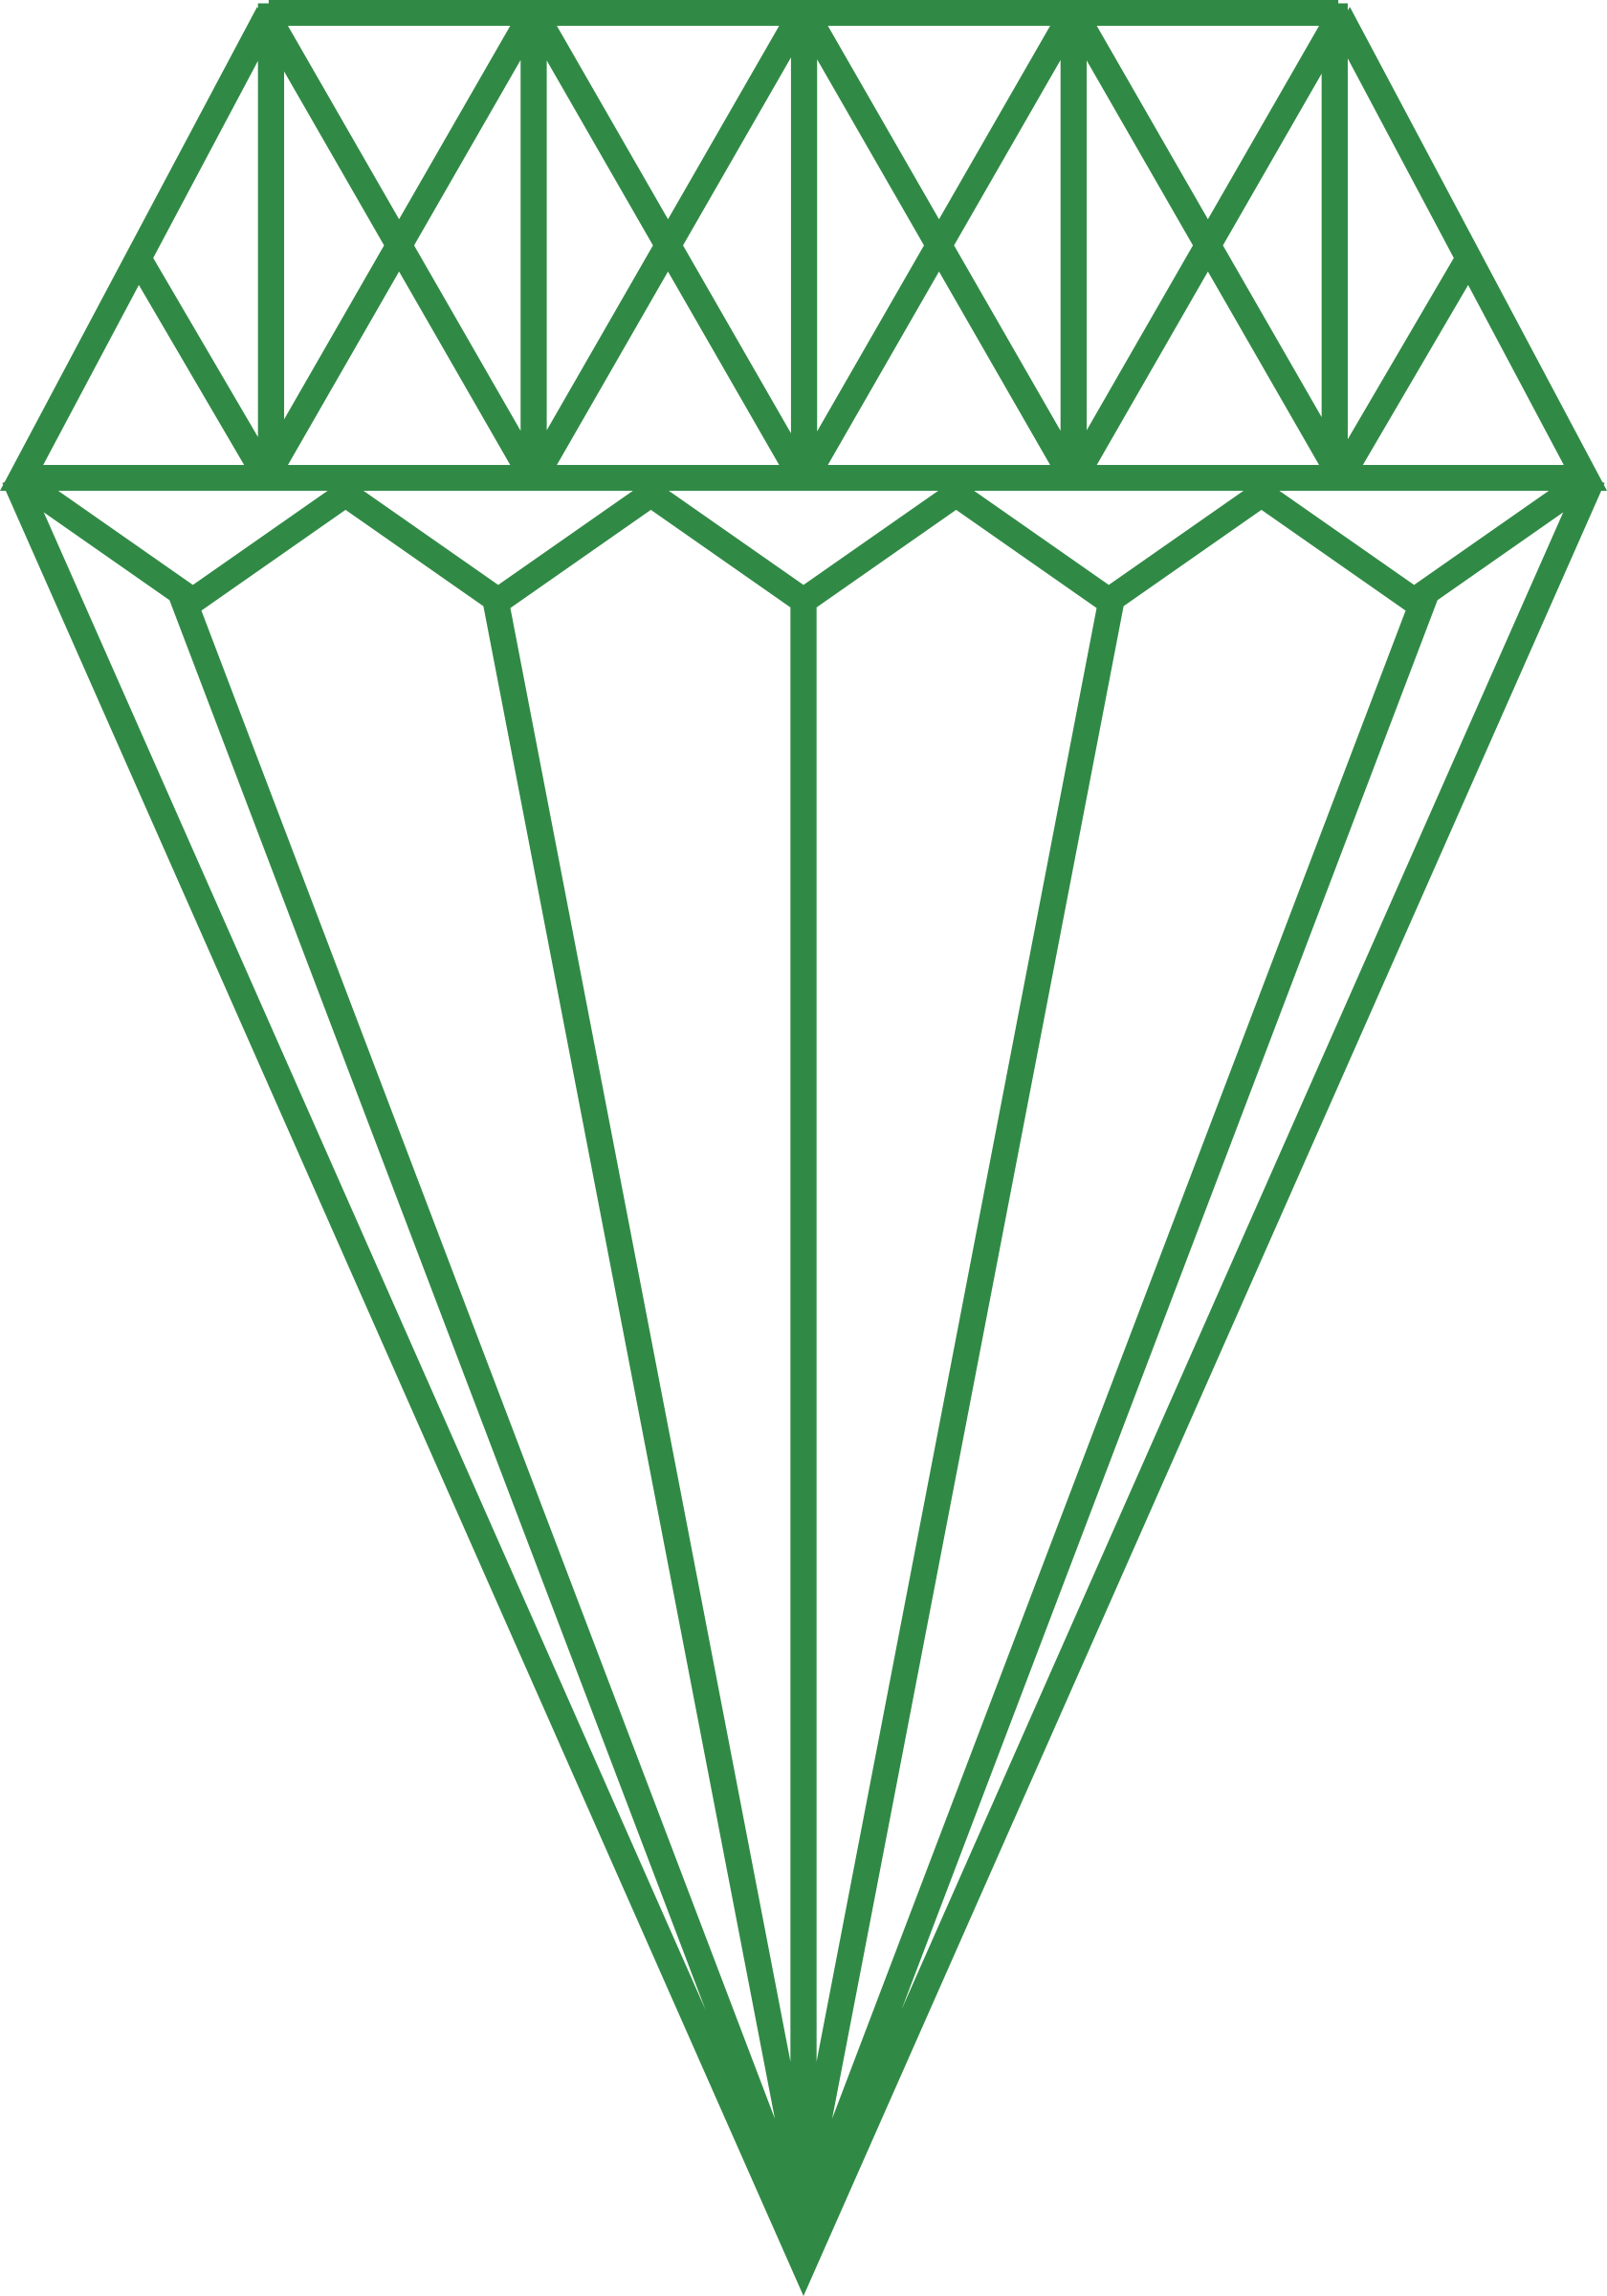 Clipart diamond svg. Green icons png free